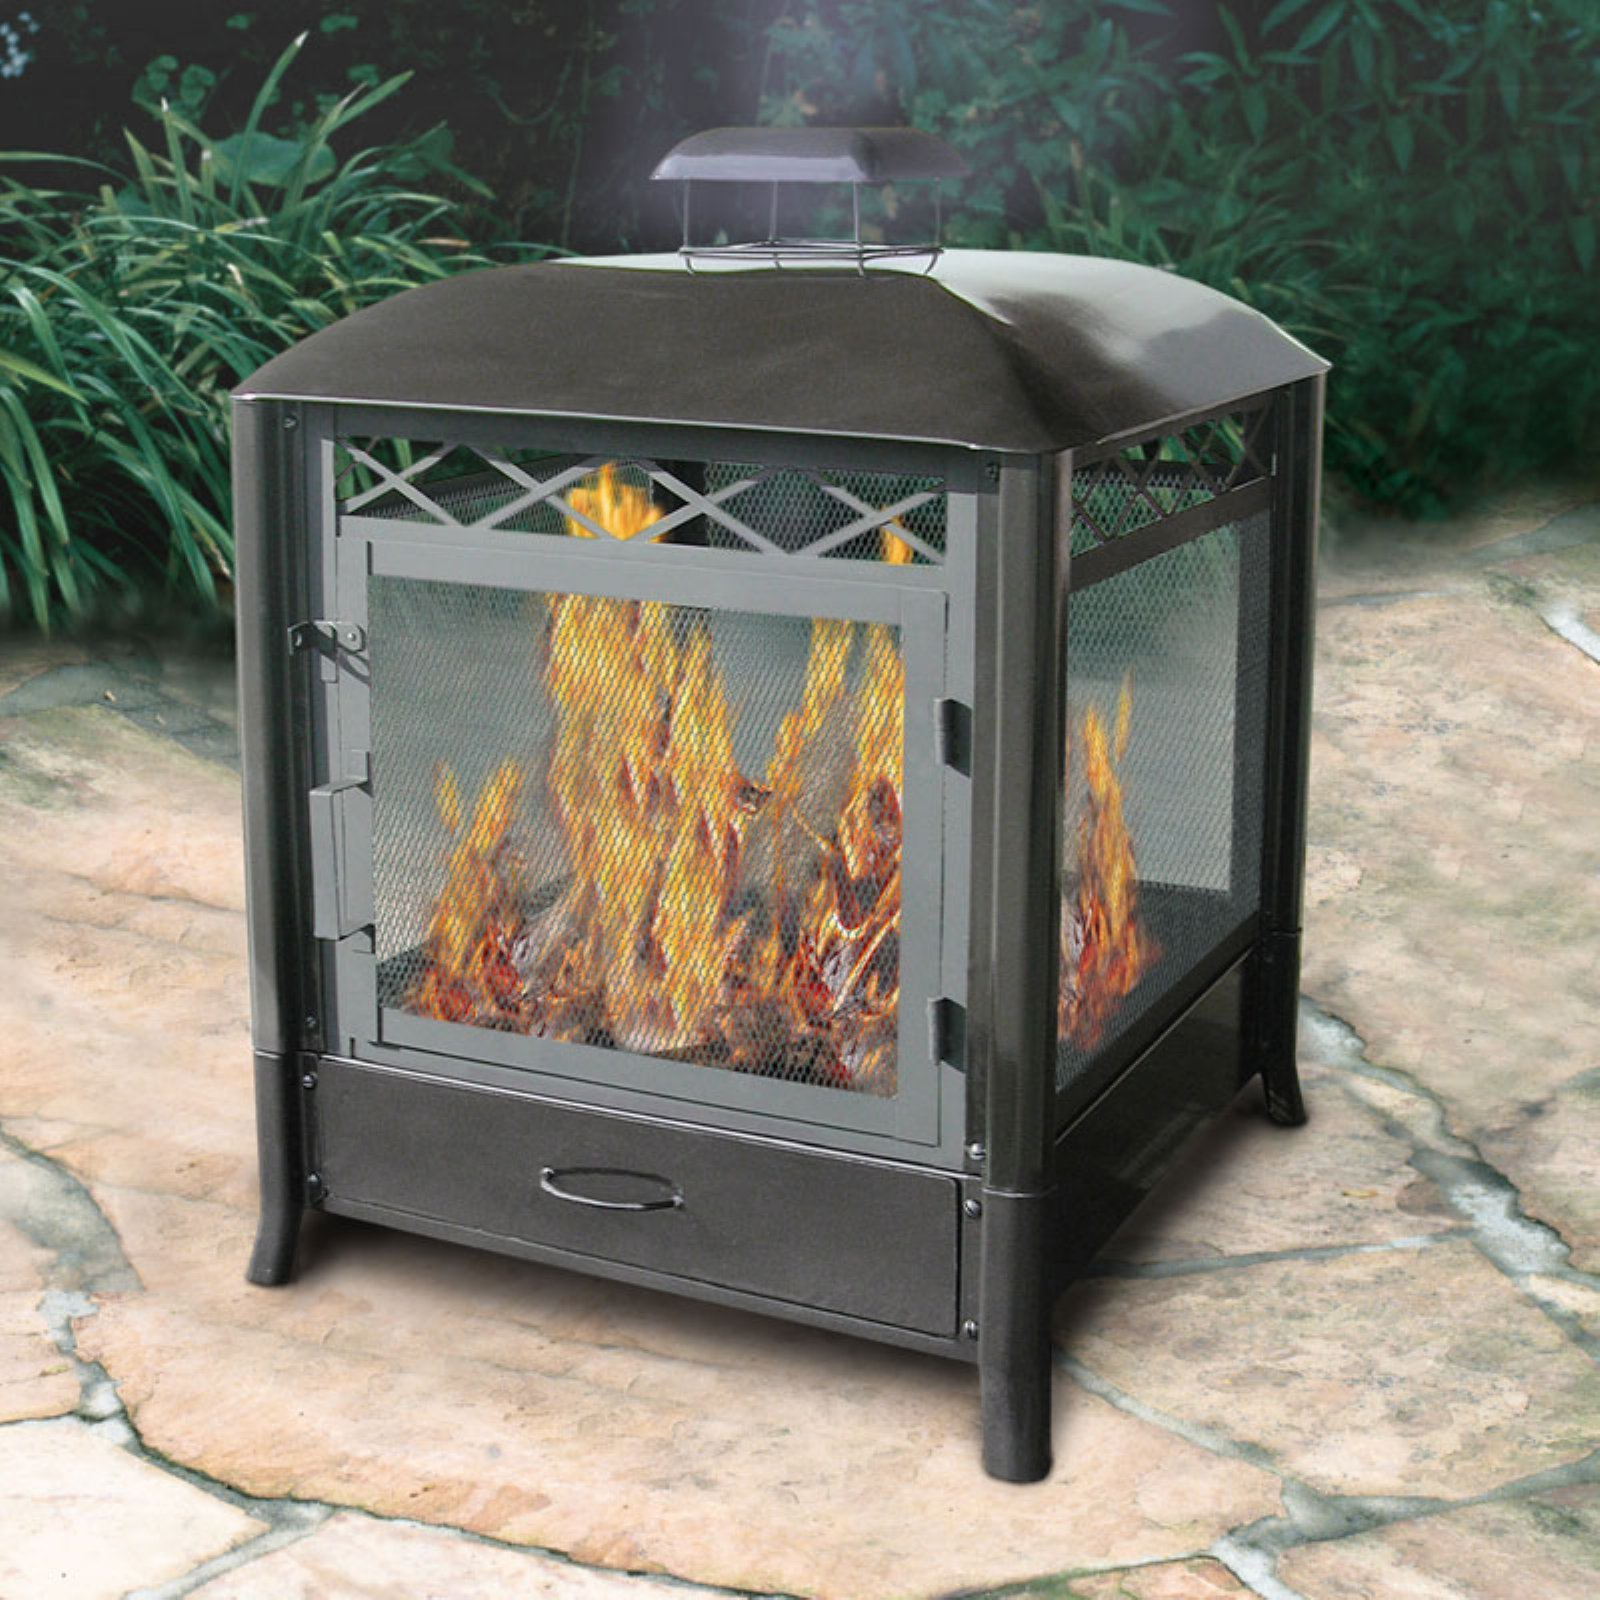 Landmann Aspen 25 in. Outdoor Fireplace by Landmann